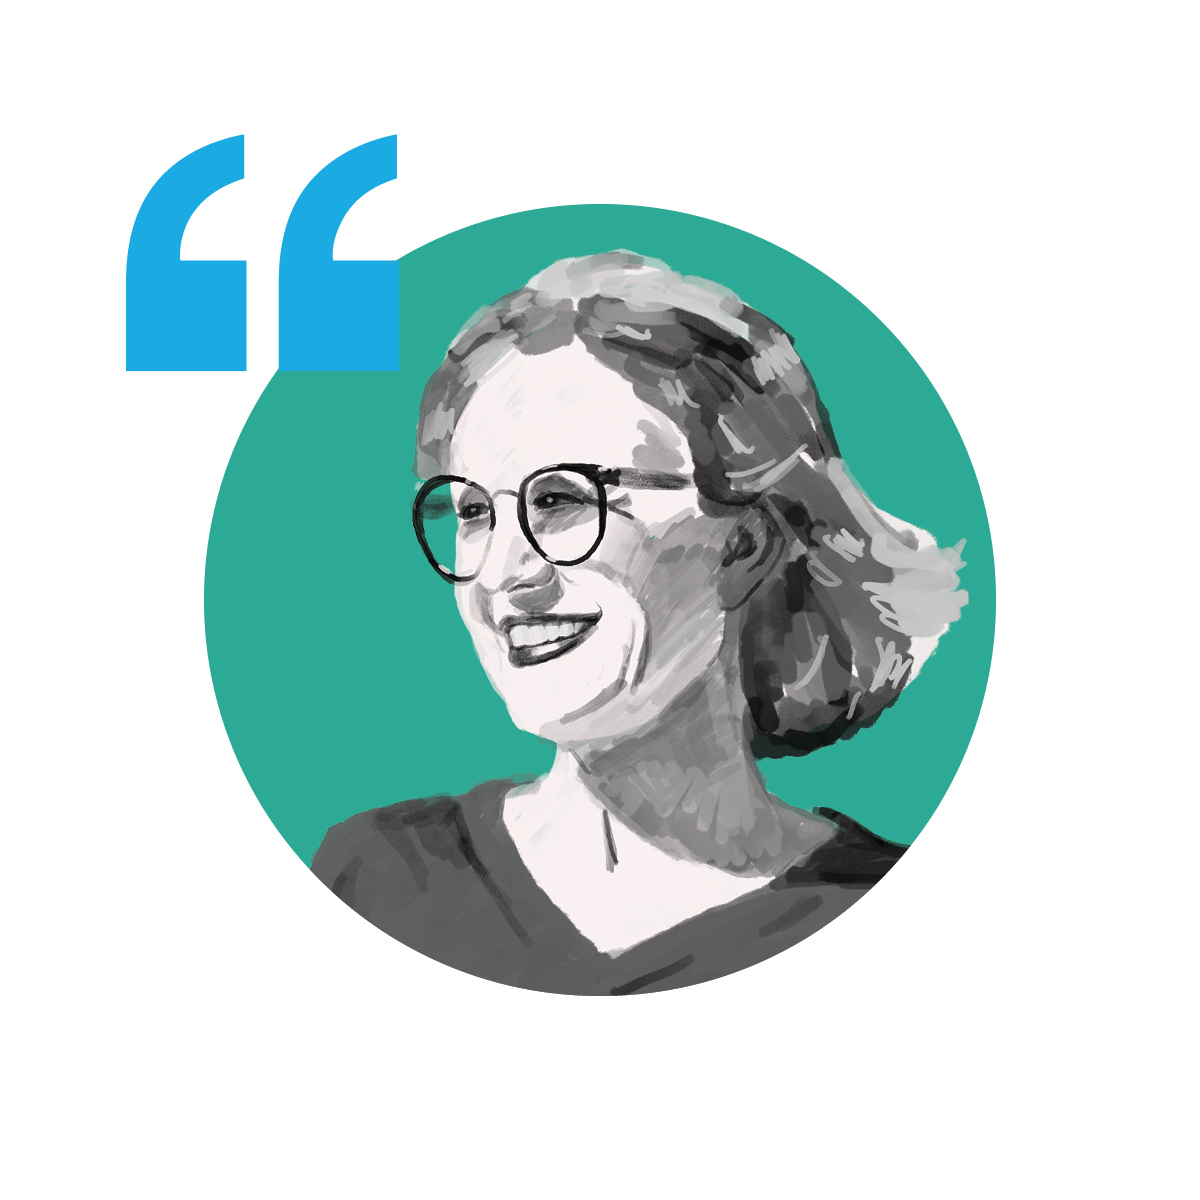 Illustration of Amy von Kaenel, Founder & CEO of VolunteerCrowd